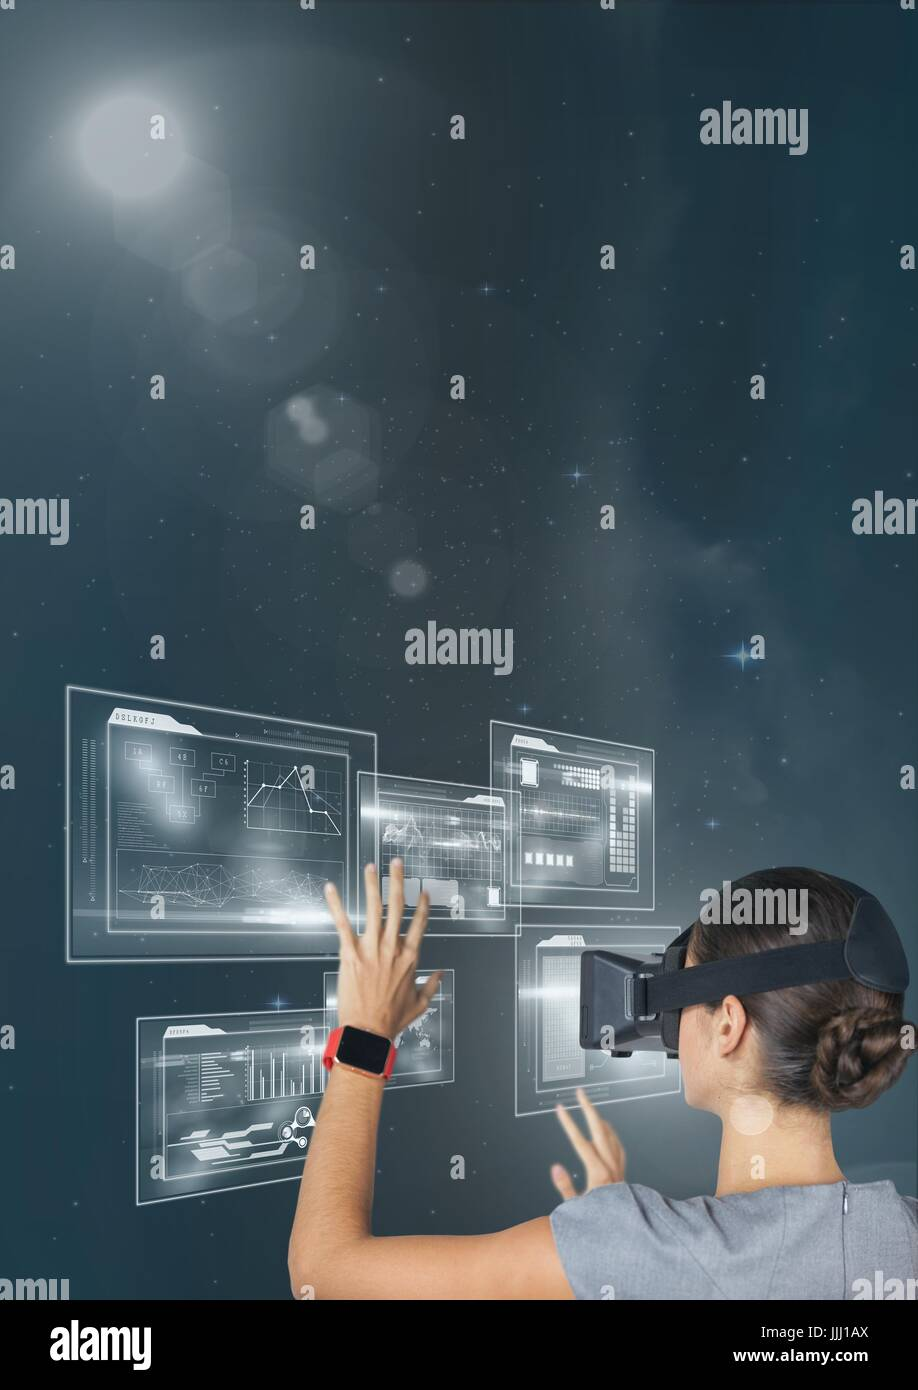 Woman in VR headset touching interface against blue sky with stars and flares - Stock Image